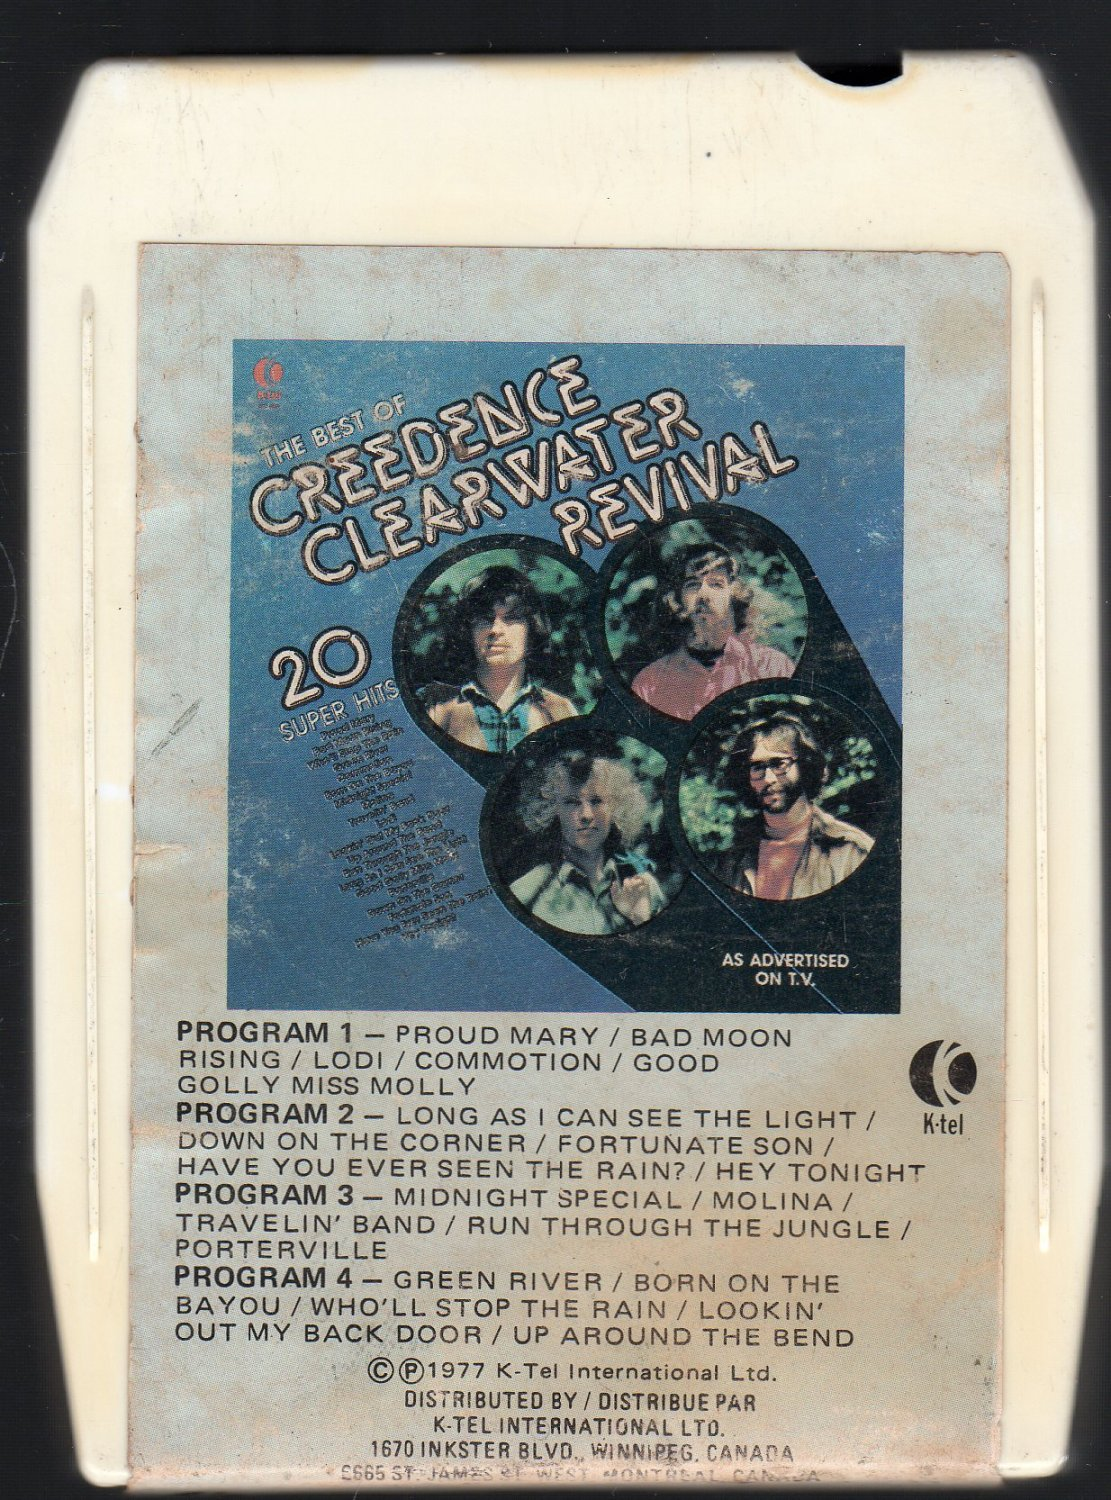 Creedence Clearwater Revival - 20 Super Hits The Best Of (K-TEL) 8-track tape